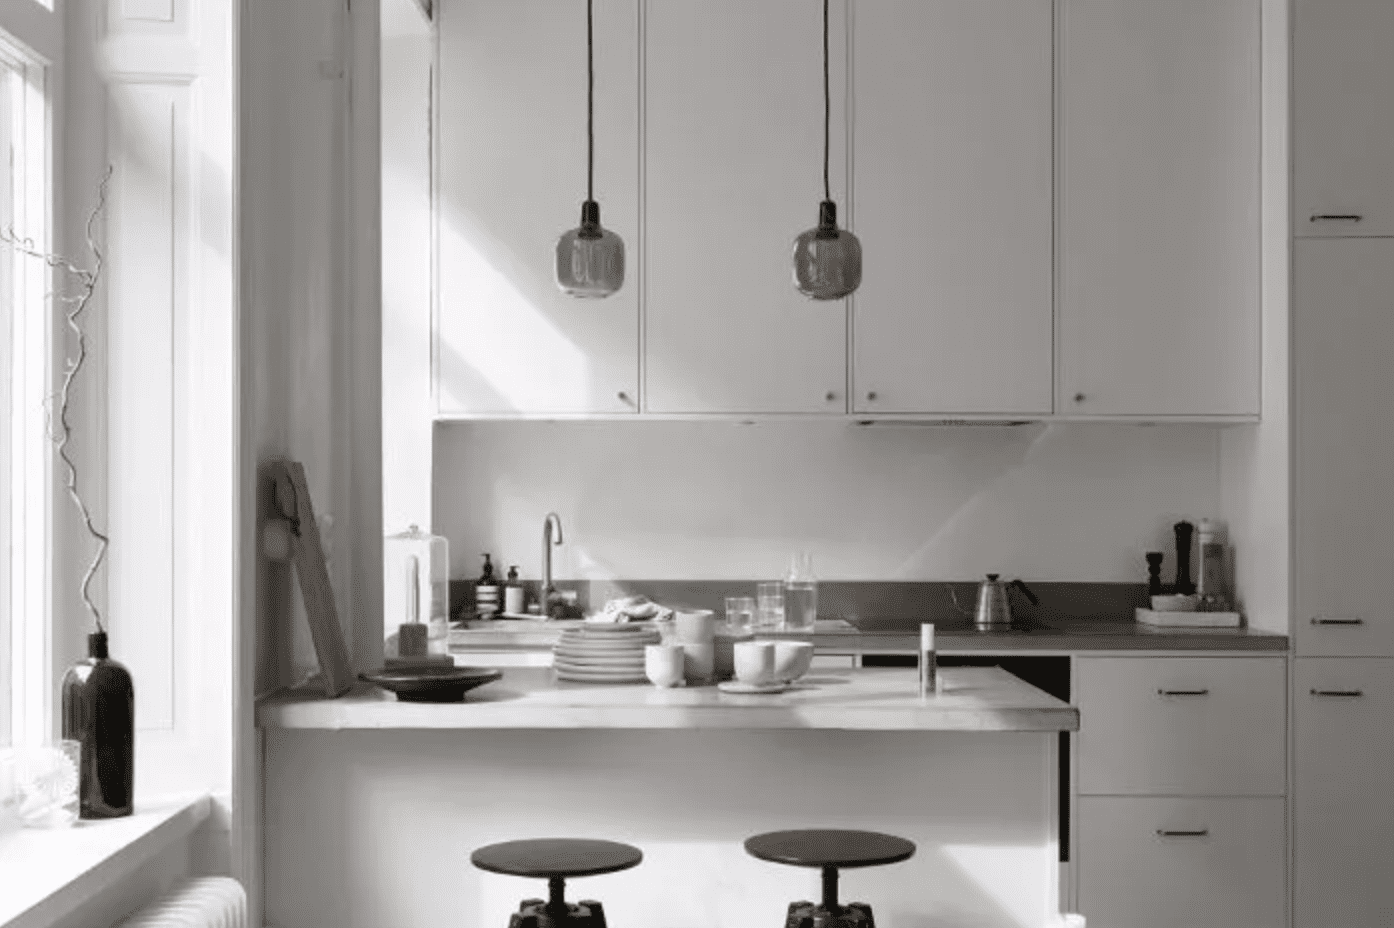 All white kitchen with gray enamel decorative objects